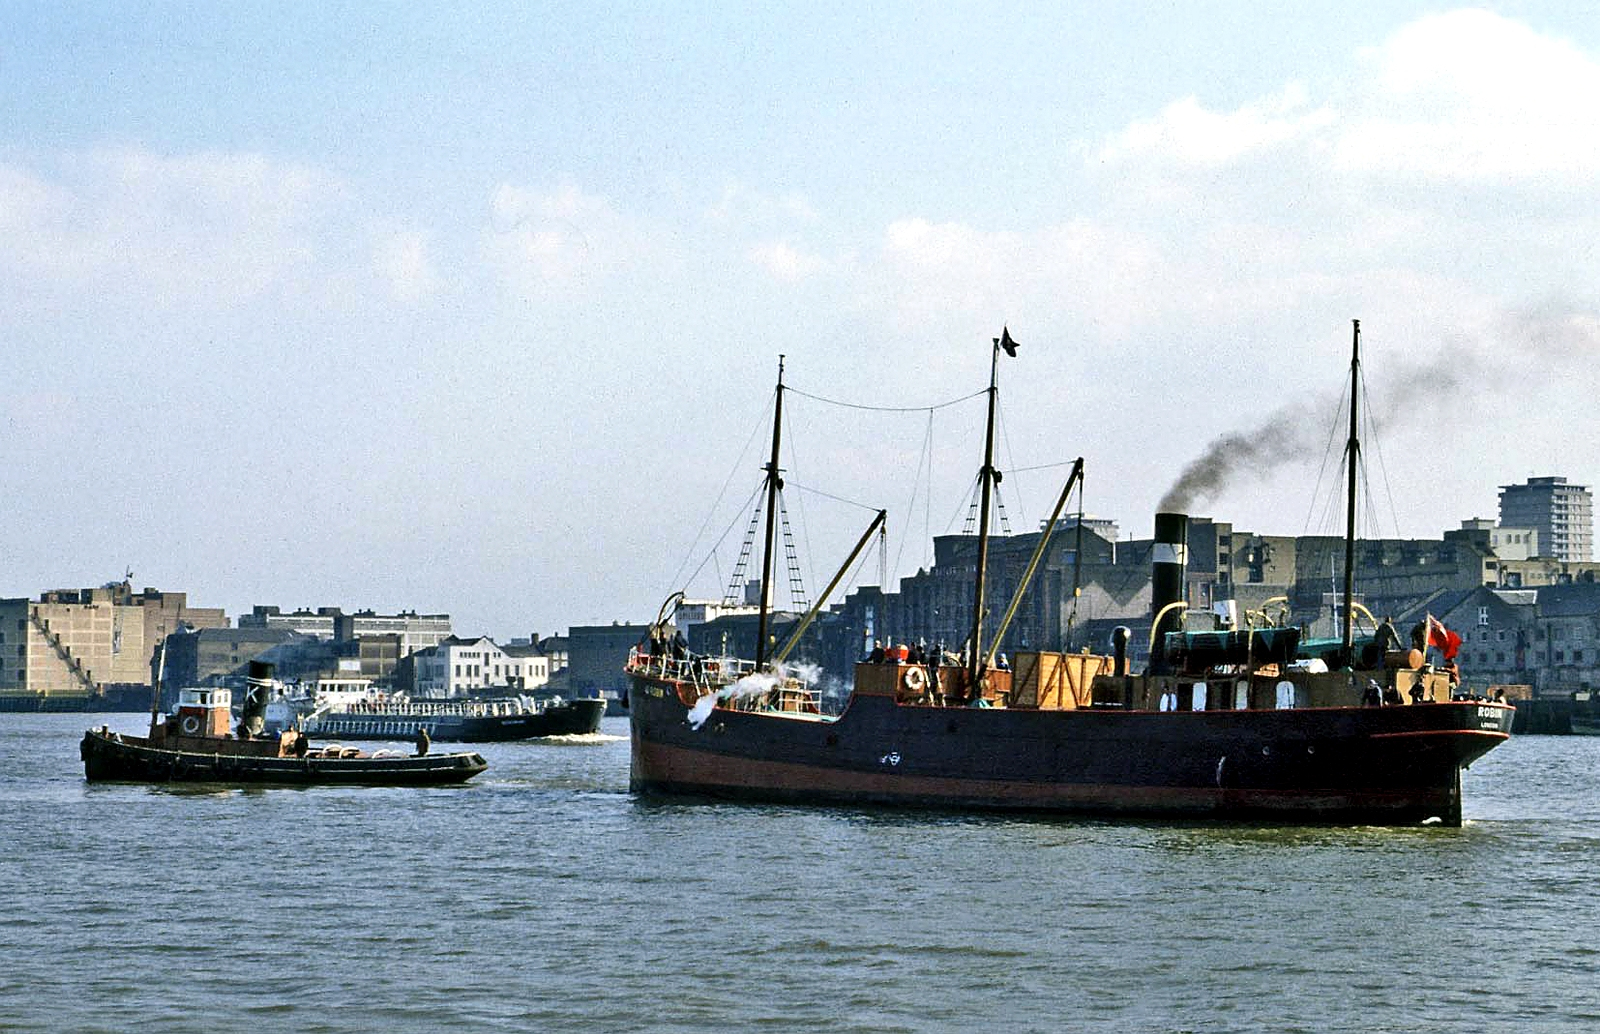 A tugboat in the Royal Docks